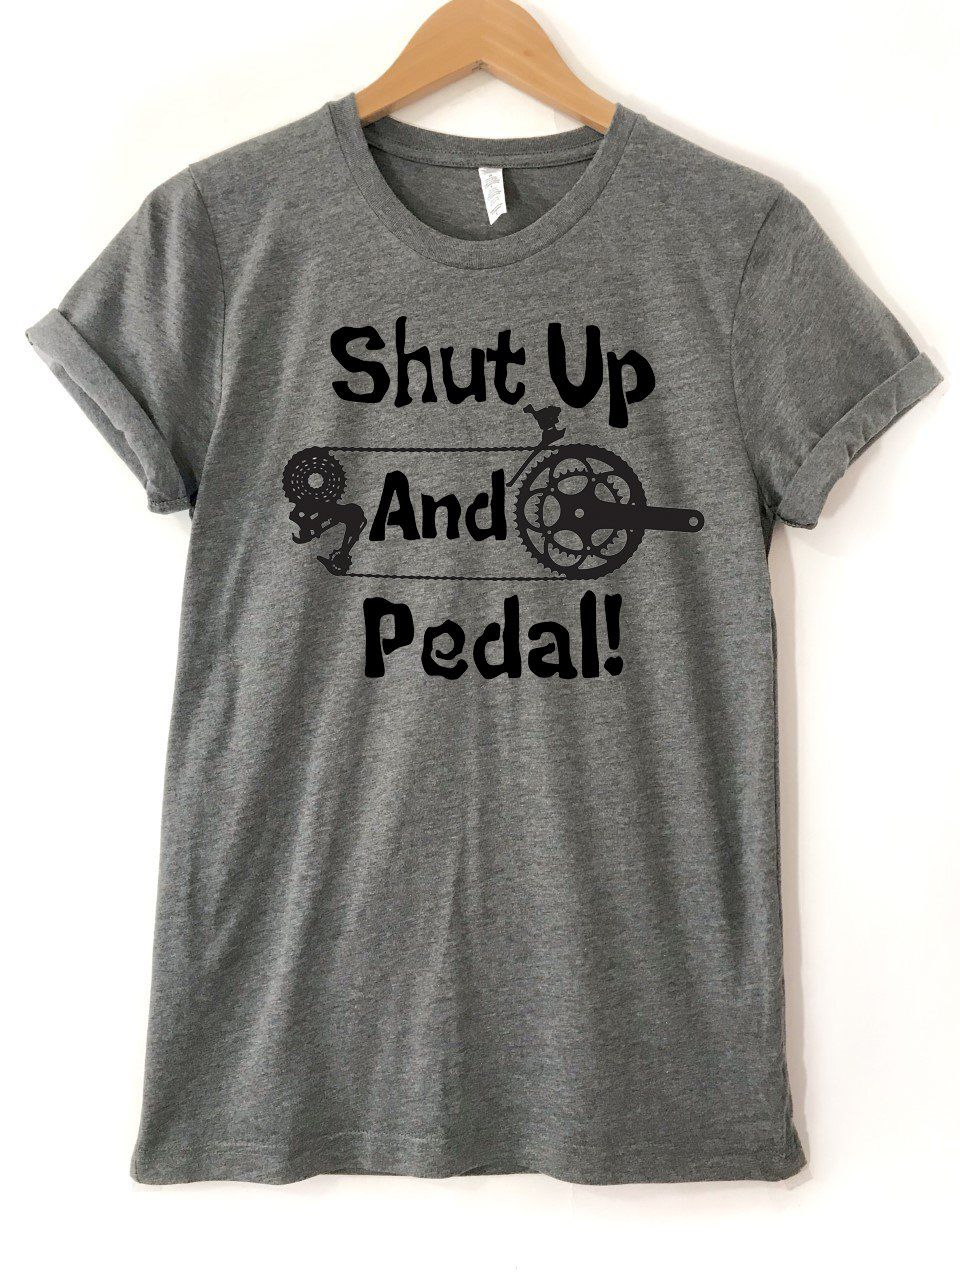 5efe5b45fa24 Shut Up And Pedal - T-Shirt